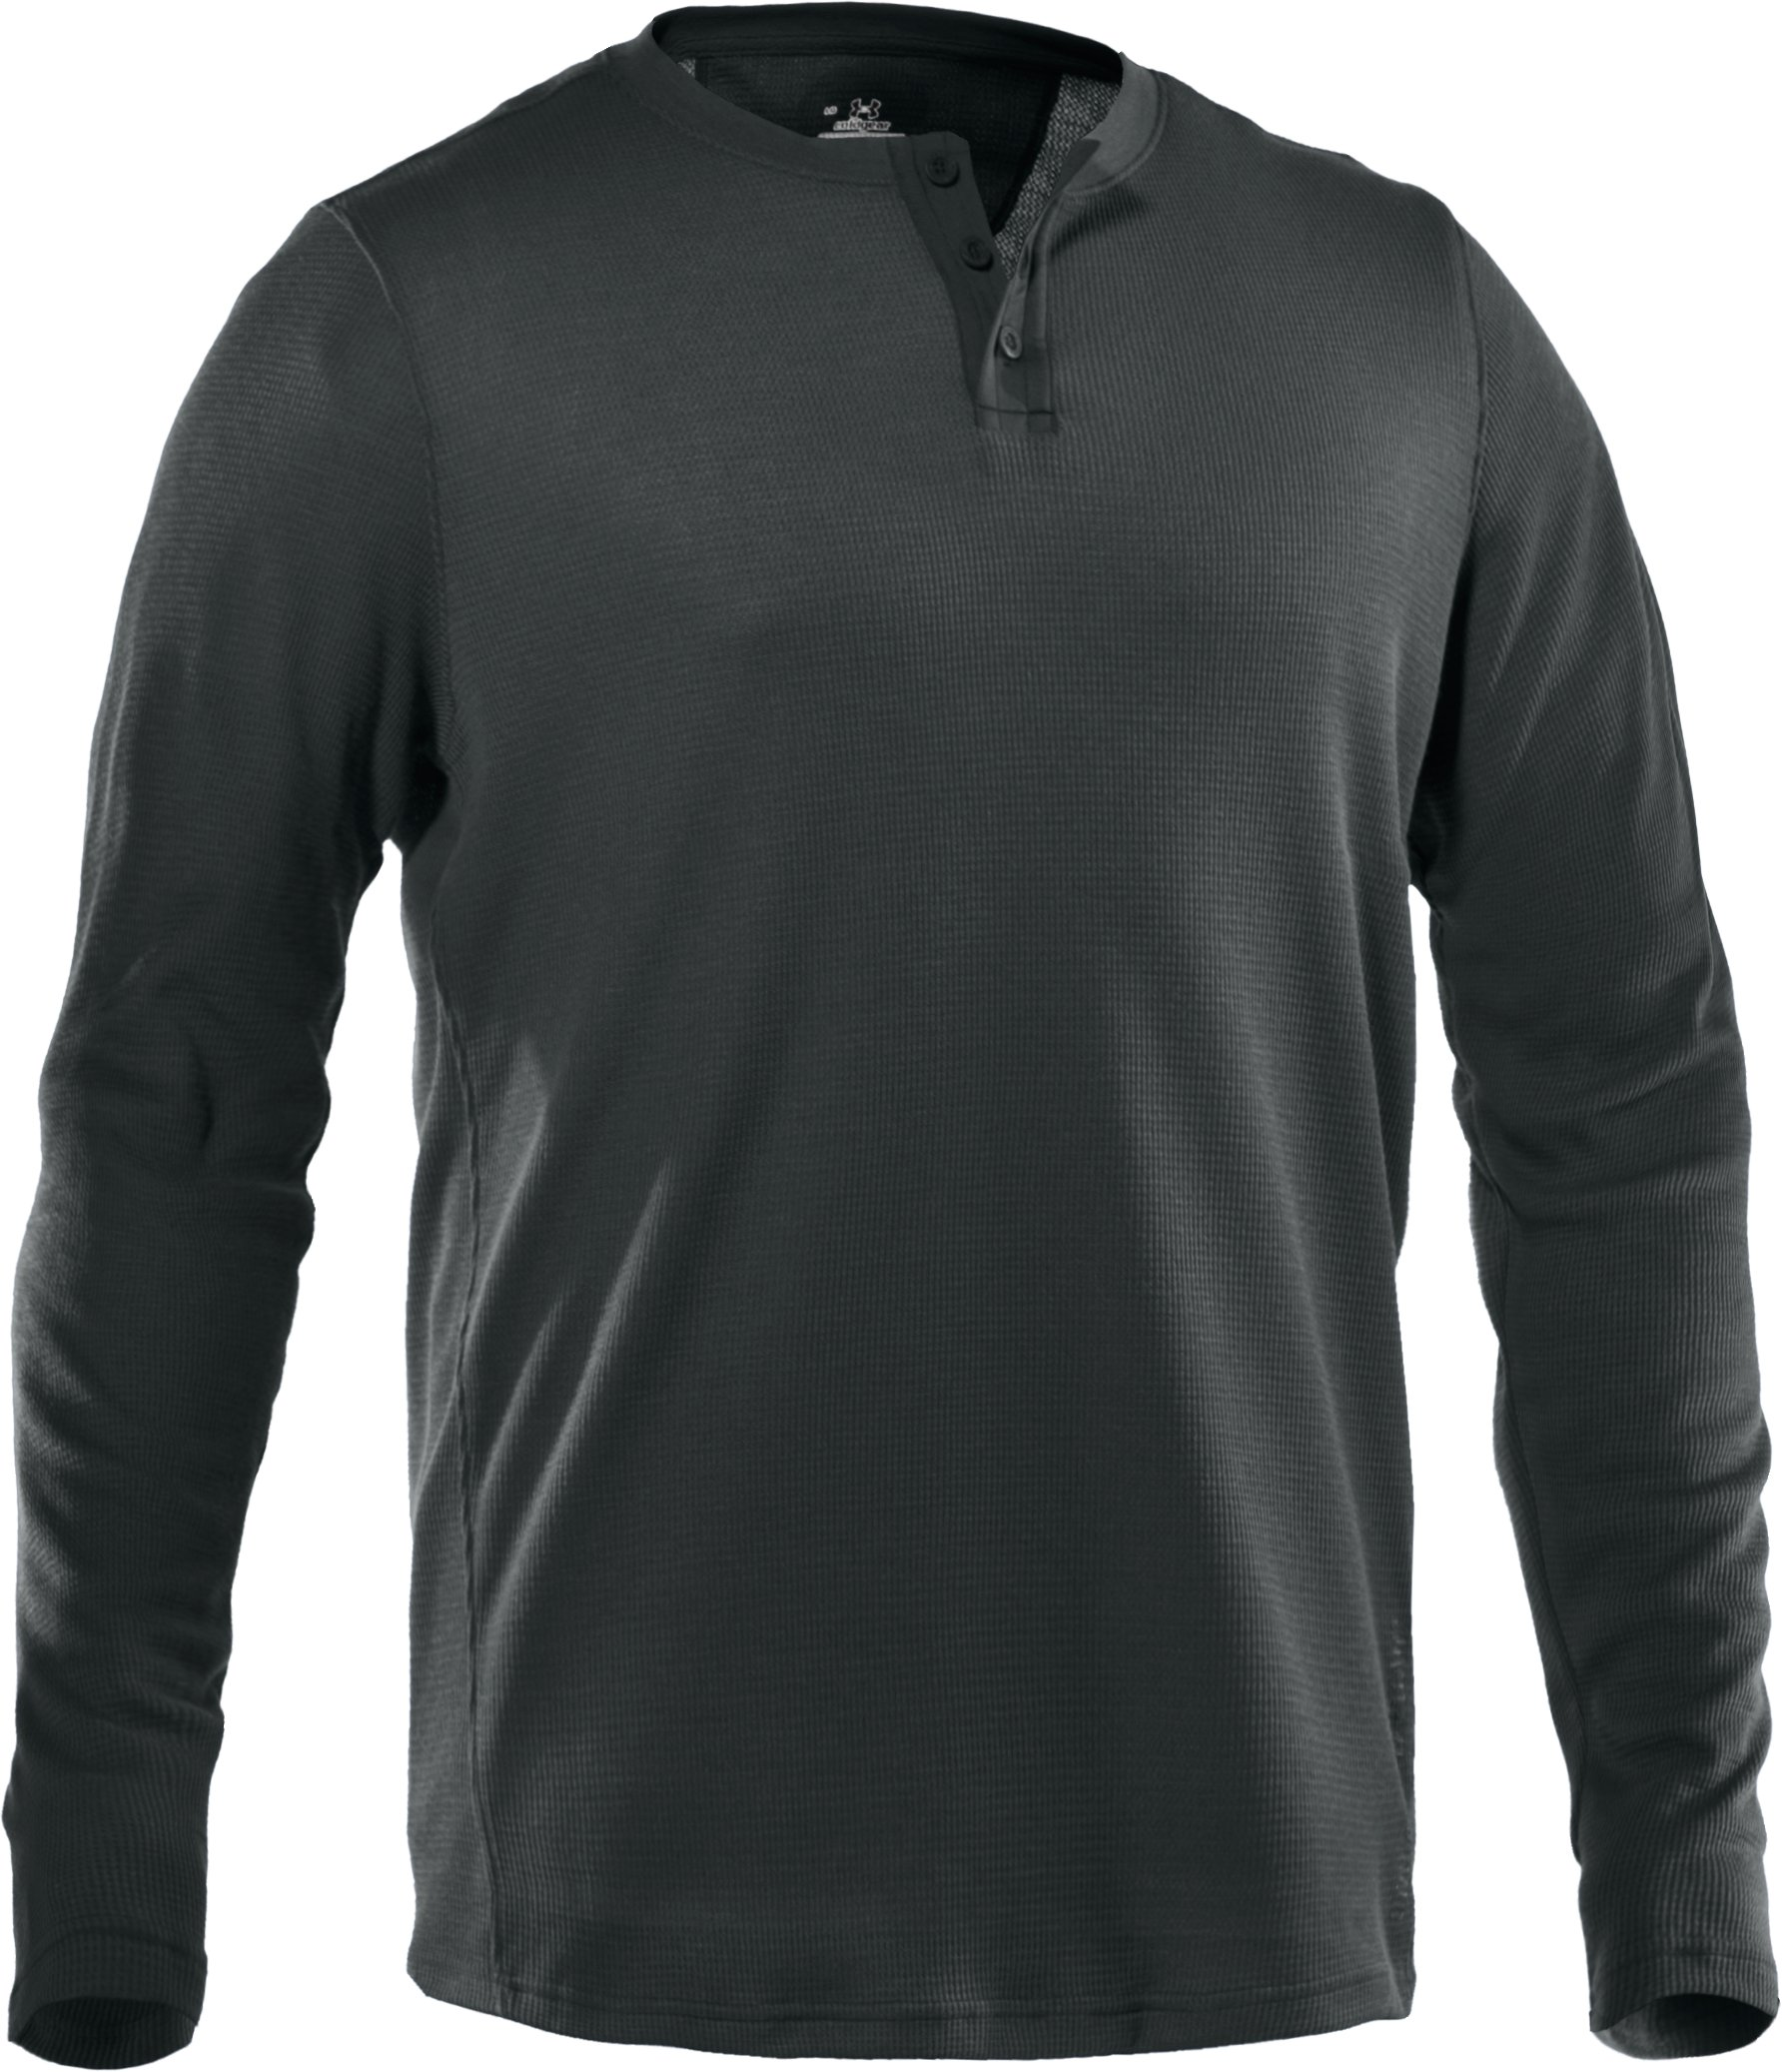 Men's Long Sleeve Waffle Henley Shirt, Battleship